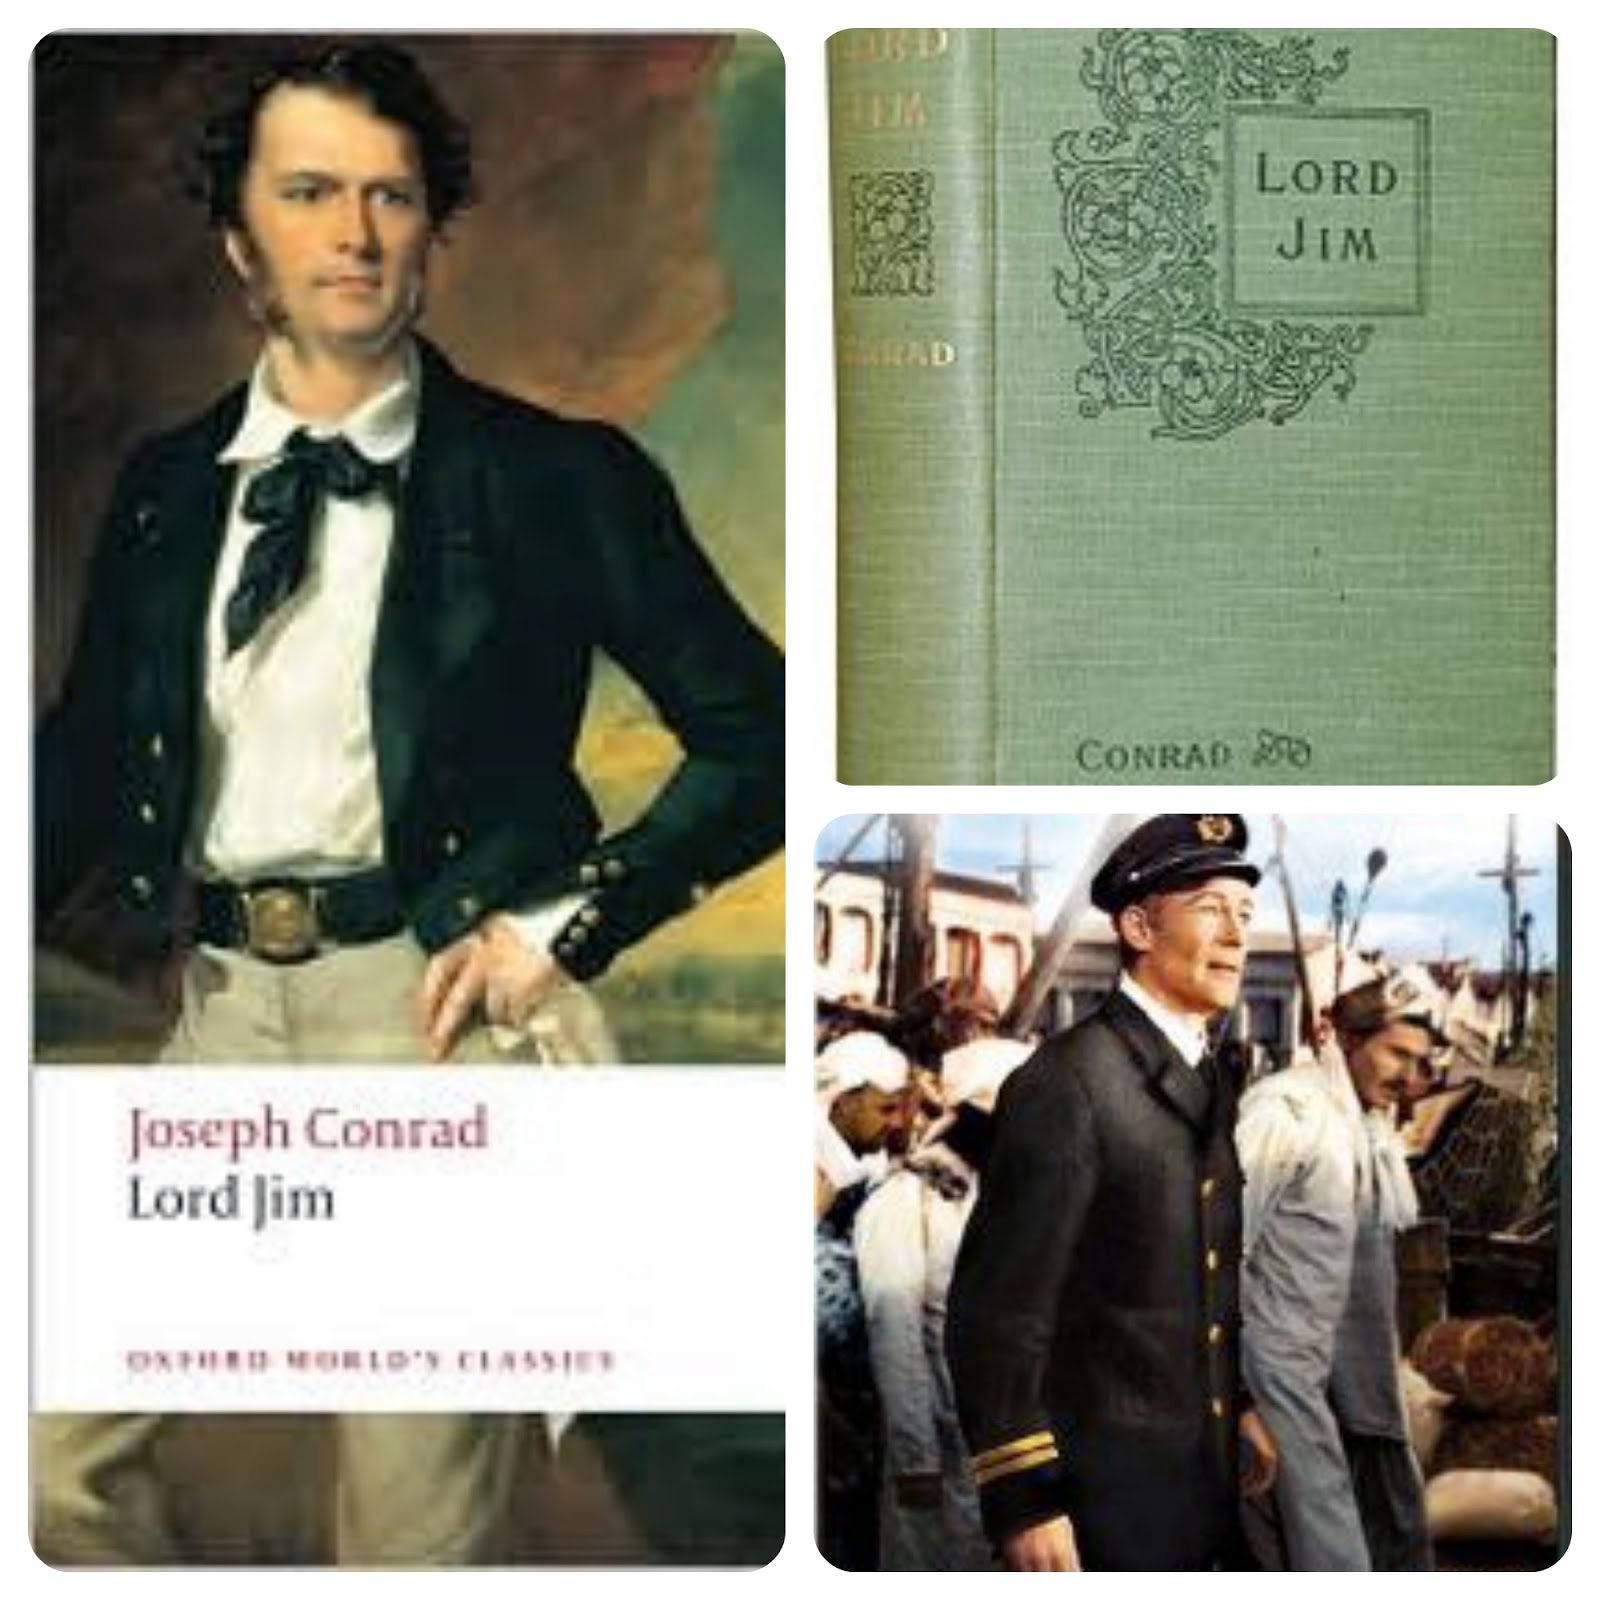 a comparison of lord jim by joseph conrad and macbeth by william shakespeare Literature study guides for all your favorite books lord jim joseph conrad macbeth william shakespeare madame bovary.